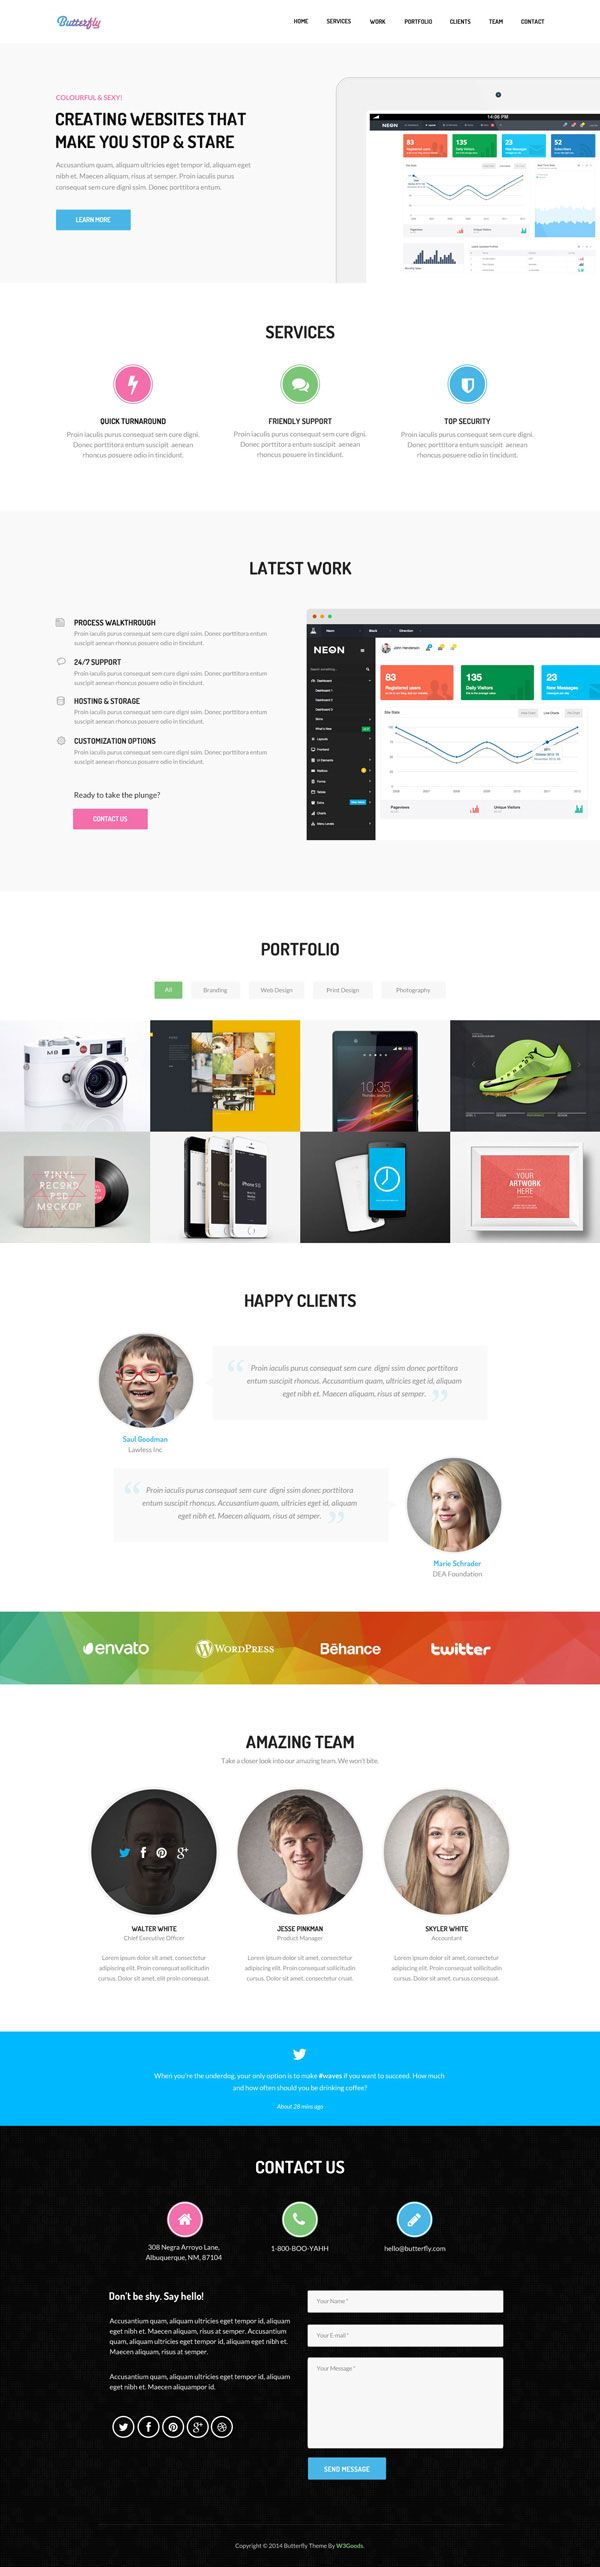 25 best Free download bootstrap template images on Pinterest ...